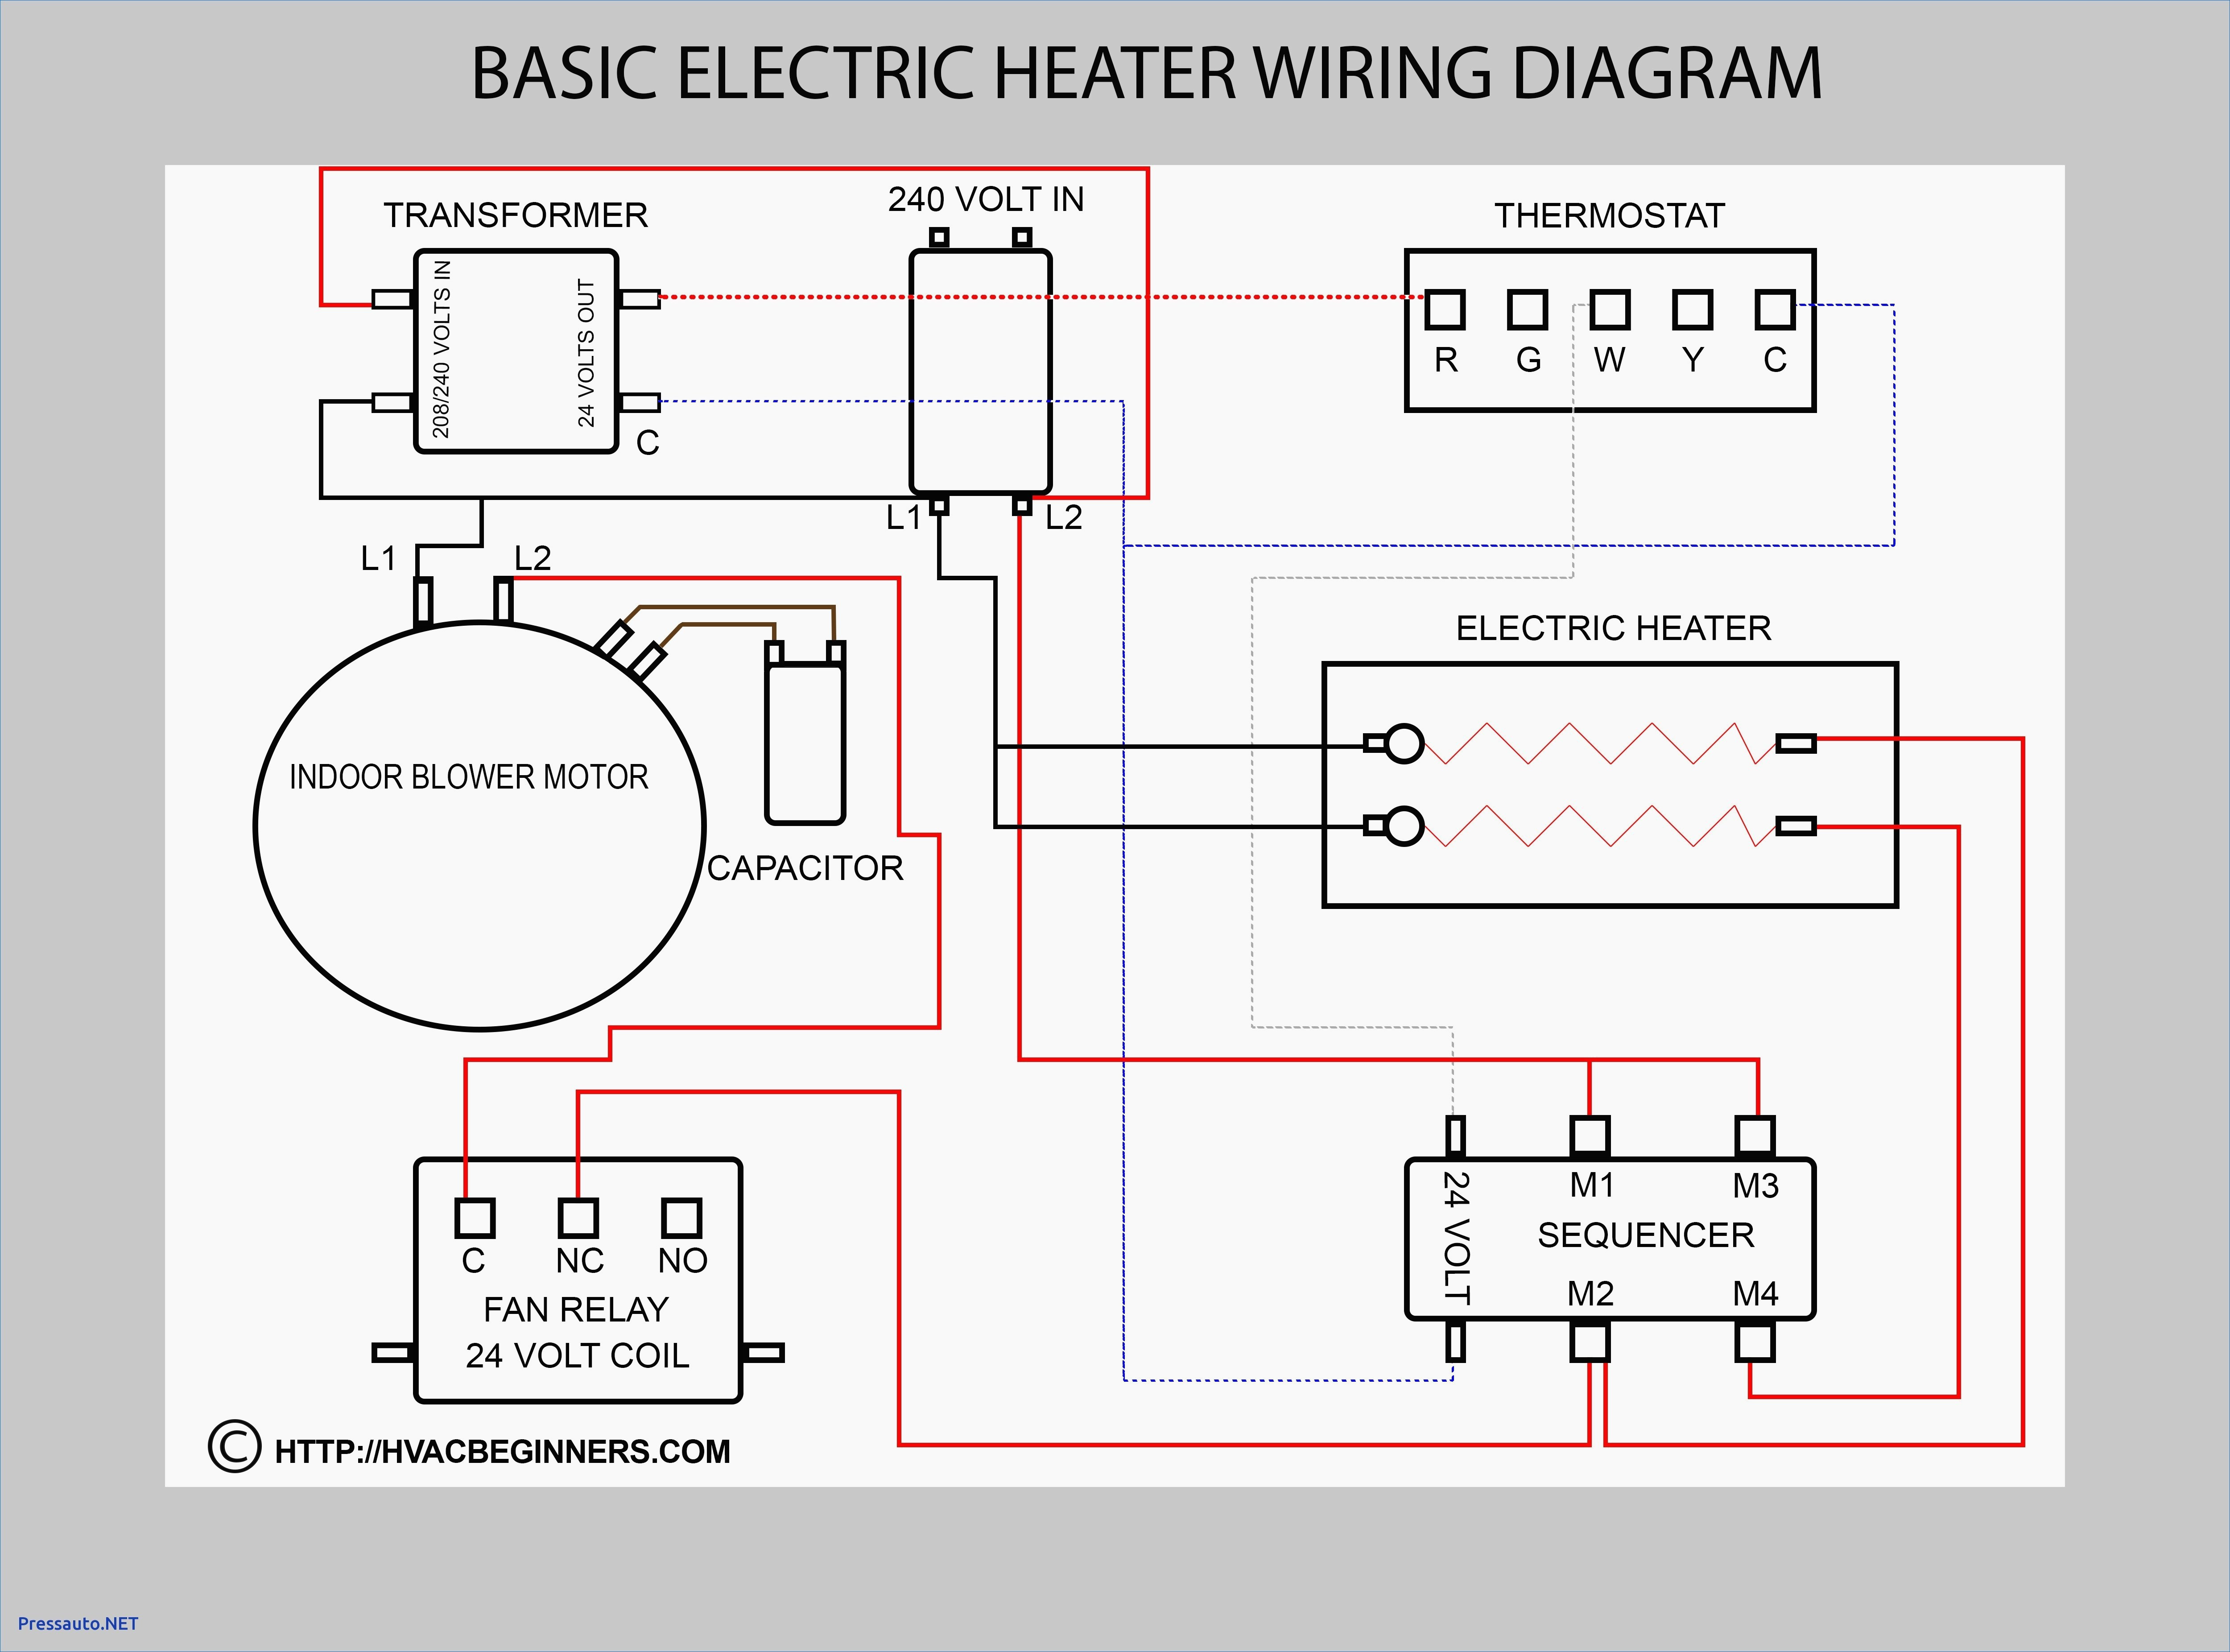 heat pump thermostat wiring diagram Collection-Wiring Diagram For Heating System New Elegant Heat Pump Thermostat Wiring Diagram Diagram 19-e